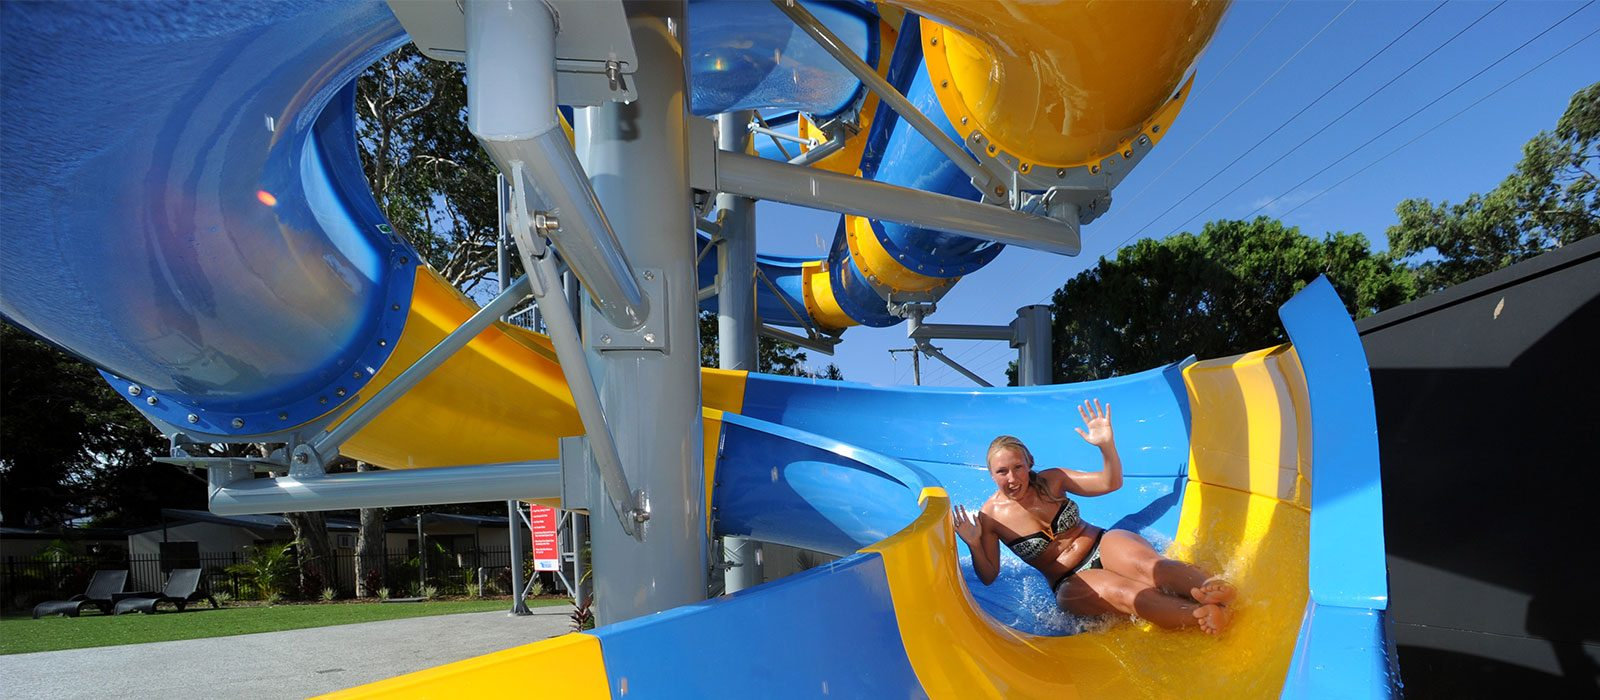 Nobby-Beach-Girl-In-the-Slide